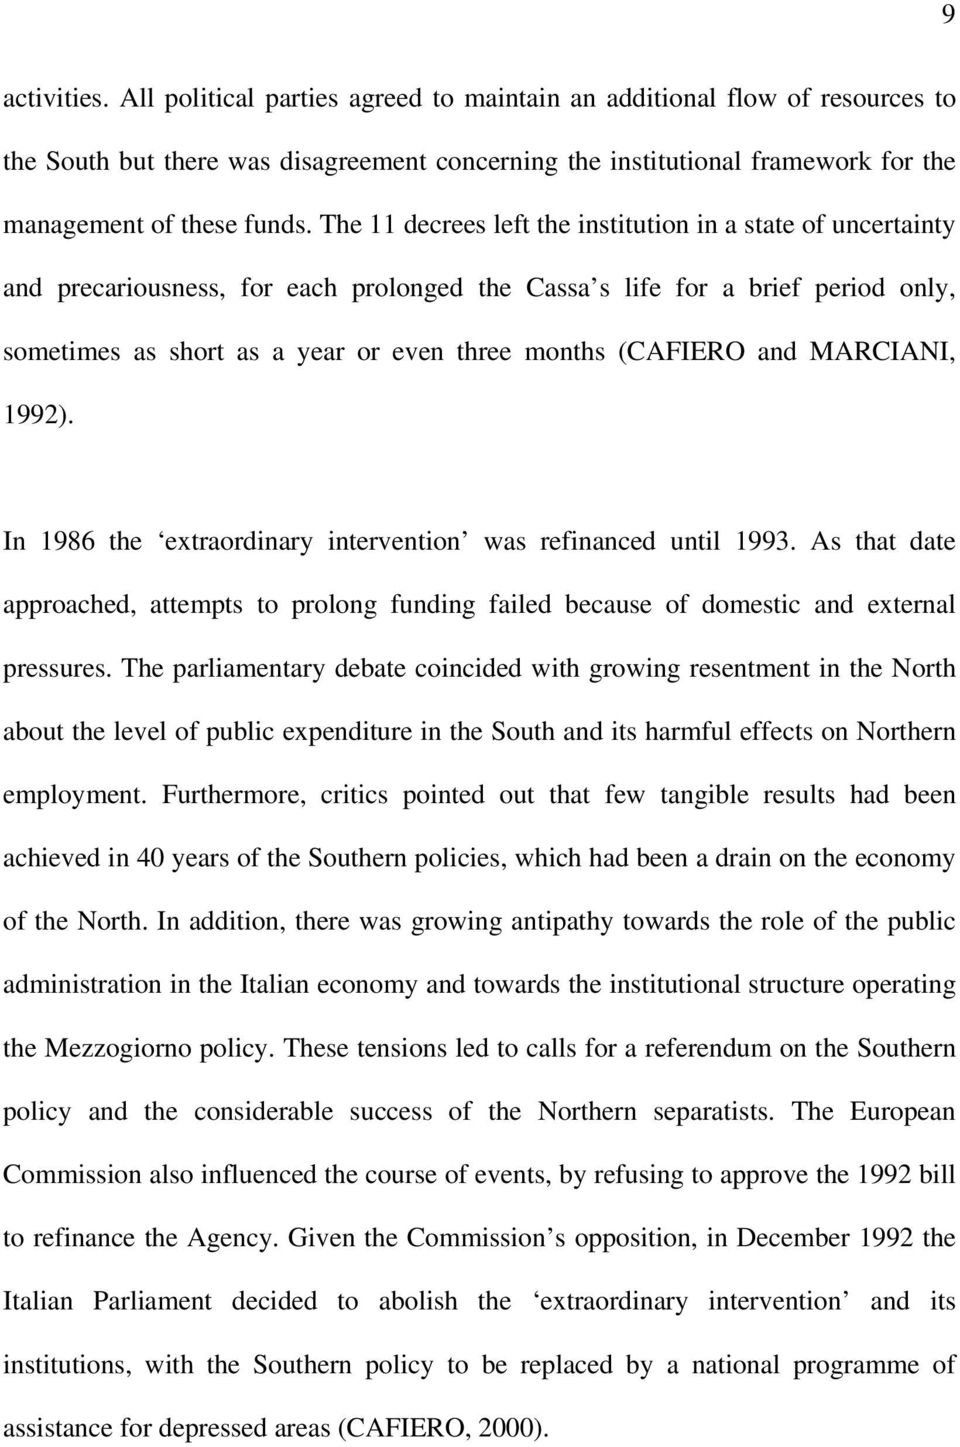 (CAFIERO and MARCIANI, 1992). In 1986 the extraordinary intervention was refinanced until 1993. As that date approached, attempts to prolong funding failed because of domestic and external pressures.